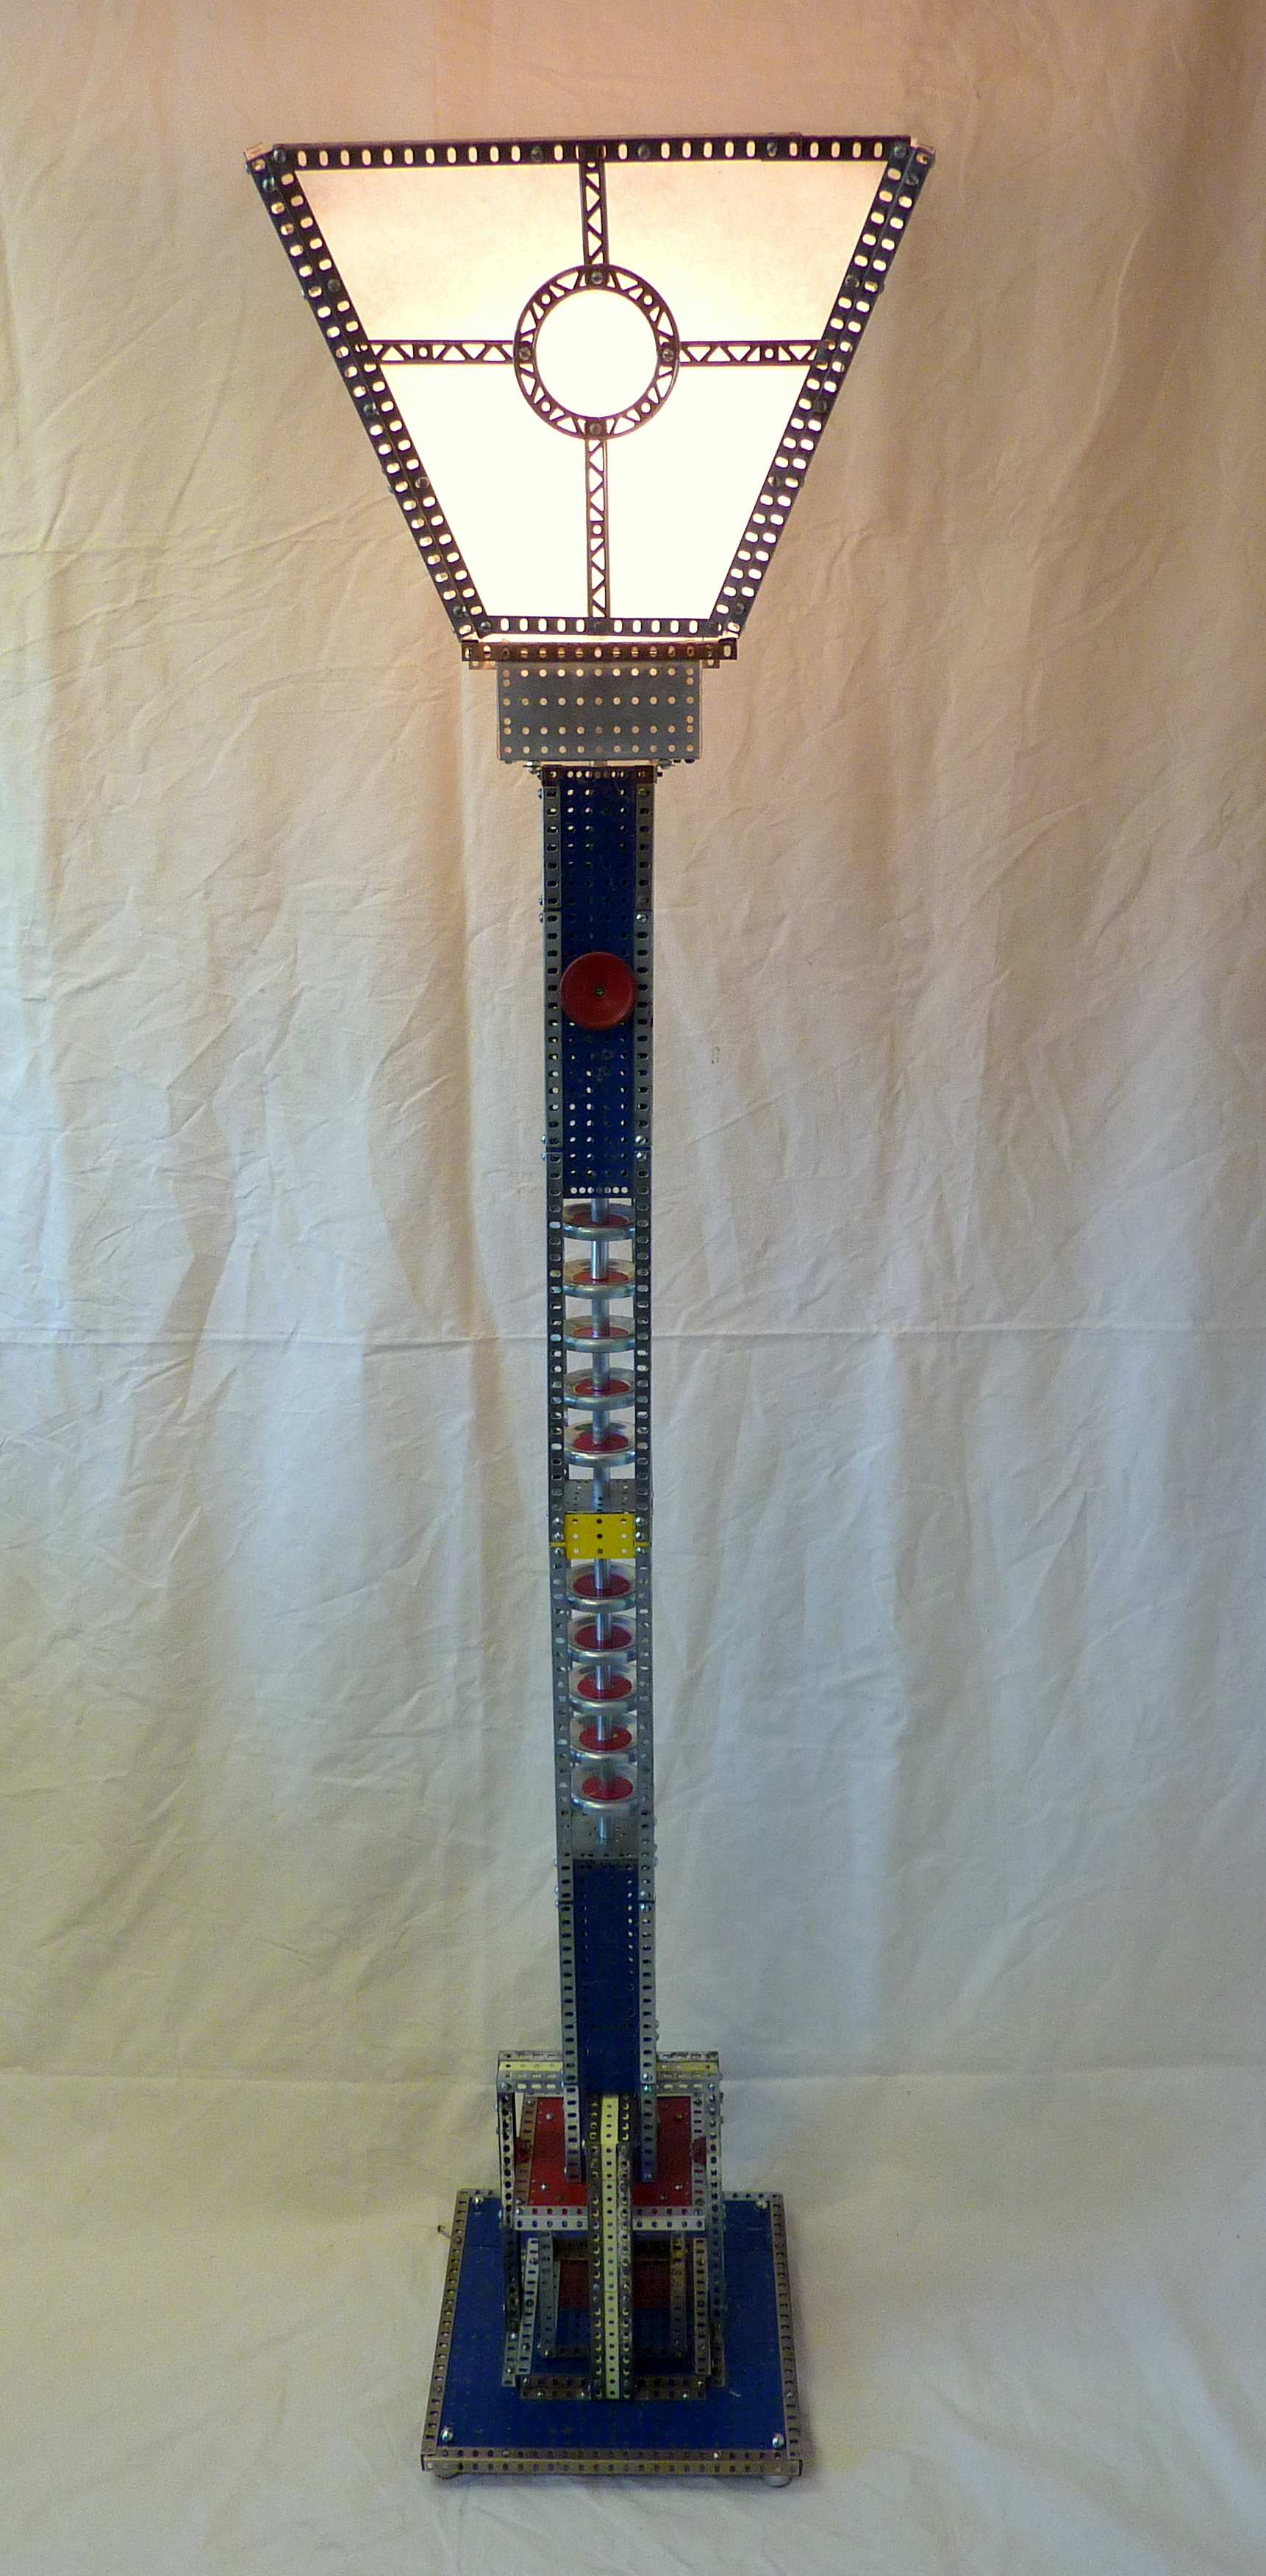 Erector Set Floor Lamp